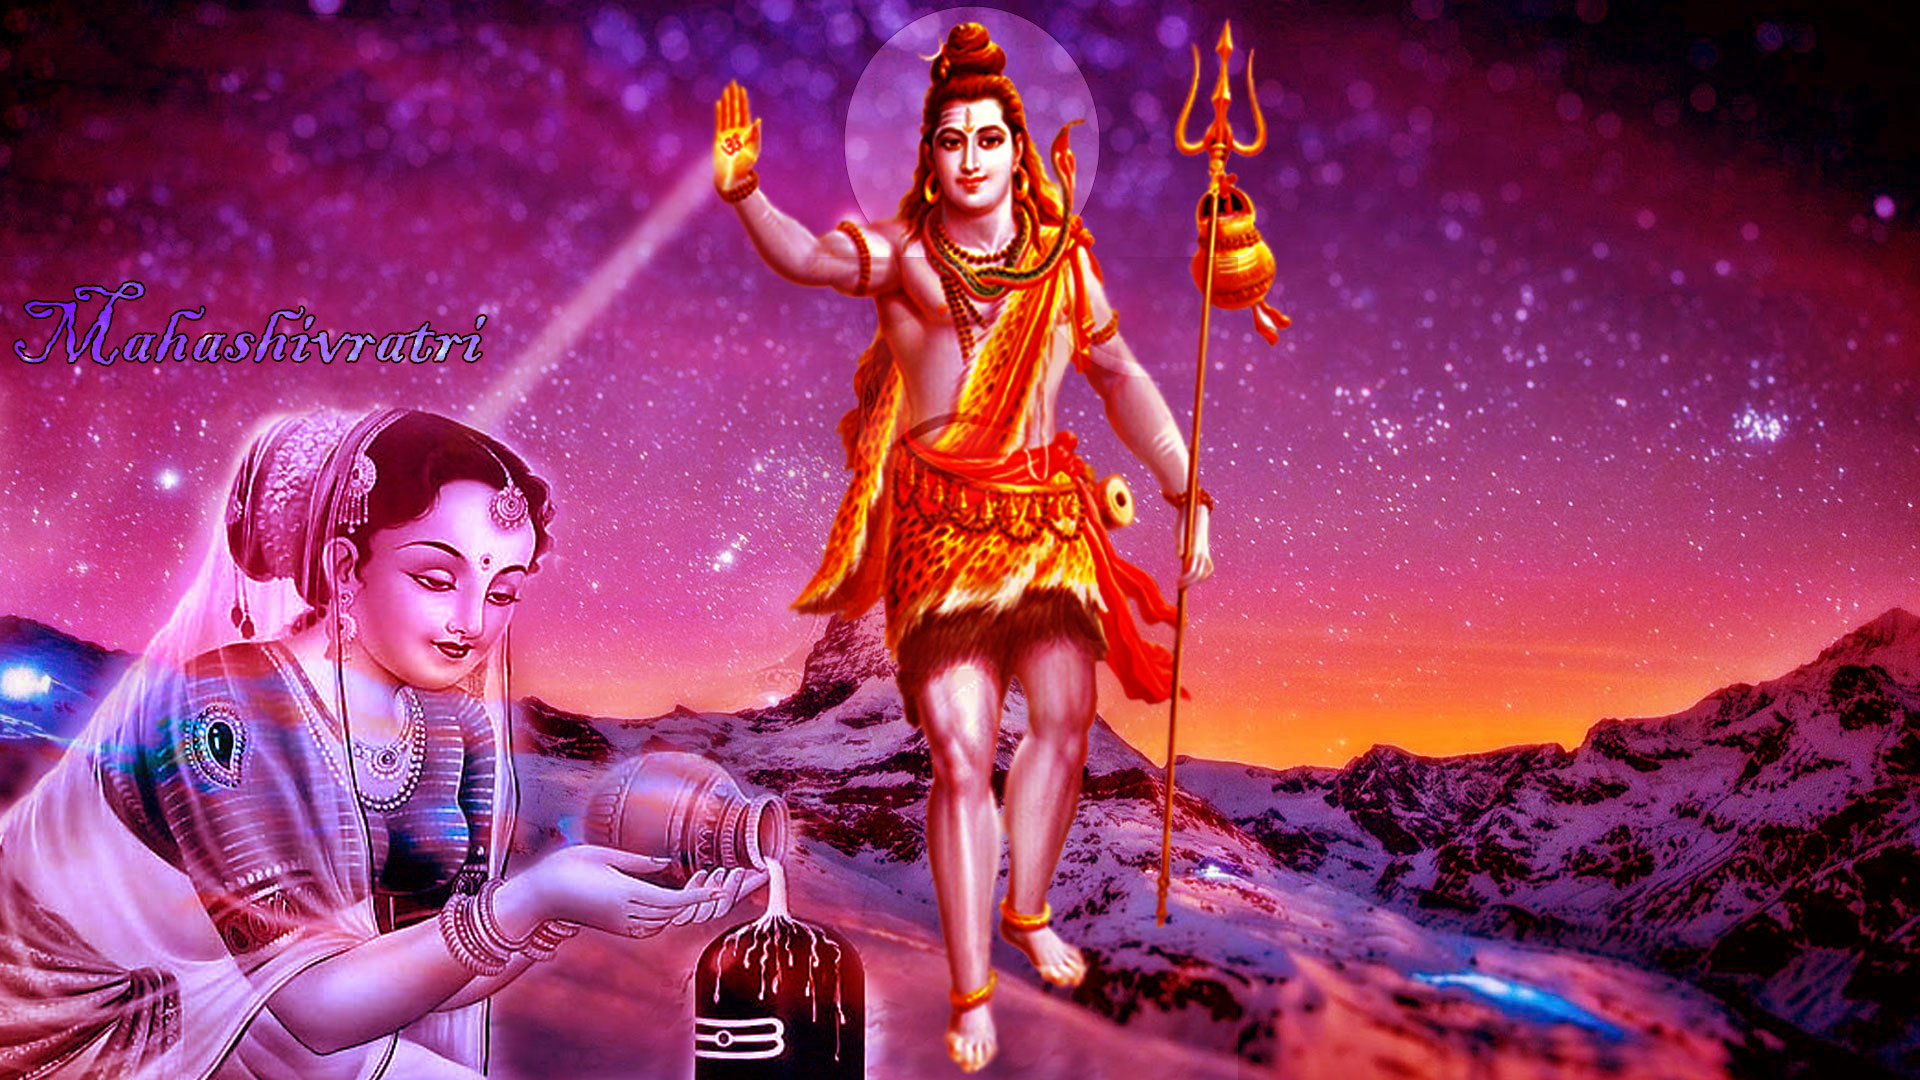 Shiv Parvati Images Hd Wallpapers Maha Shivratri